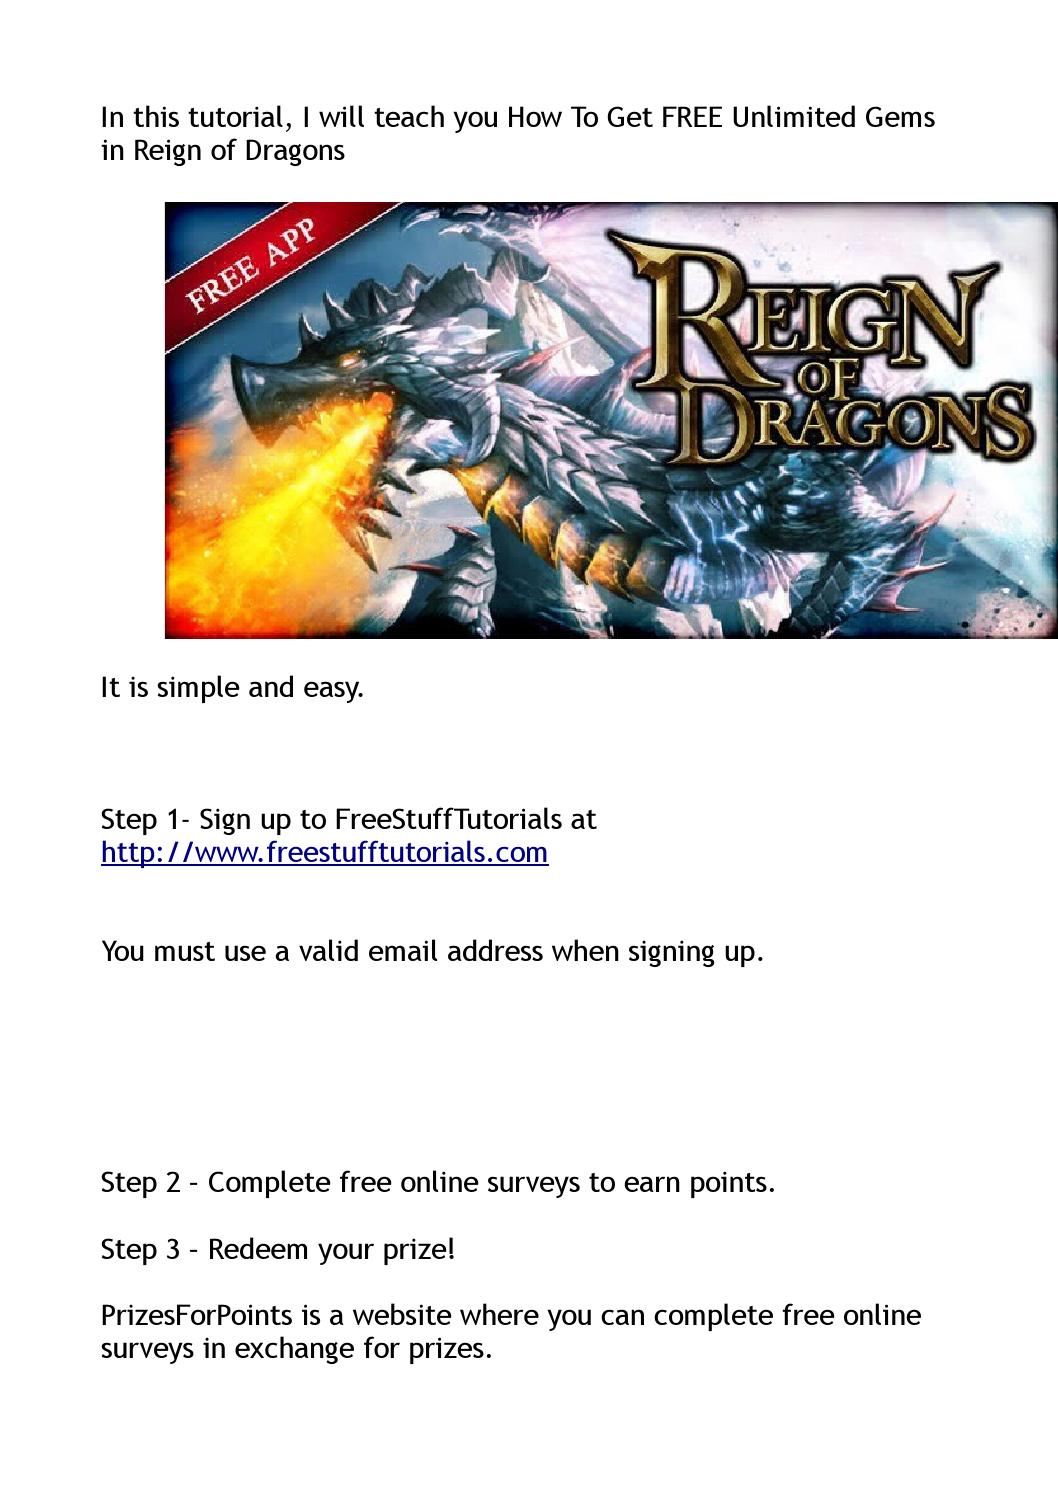 How To Get FREE Unlimited Gems in Reign of Dragons by